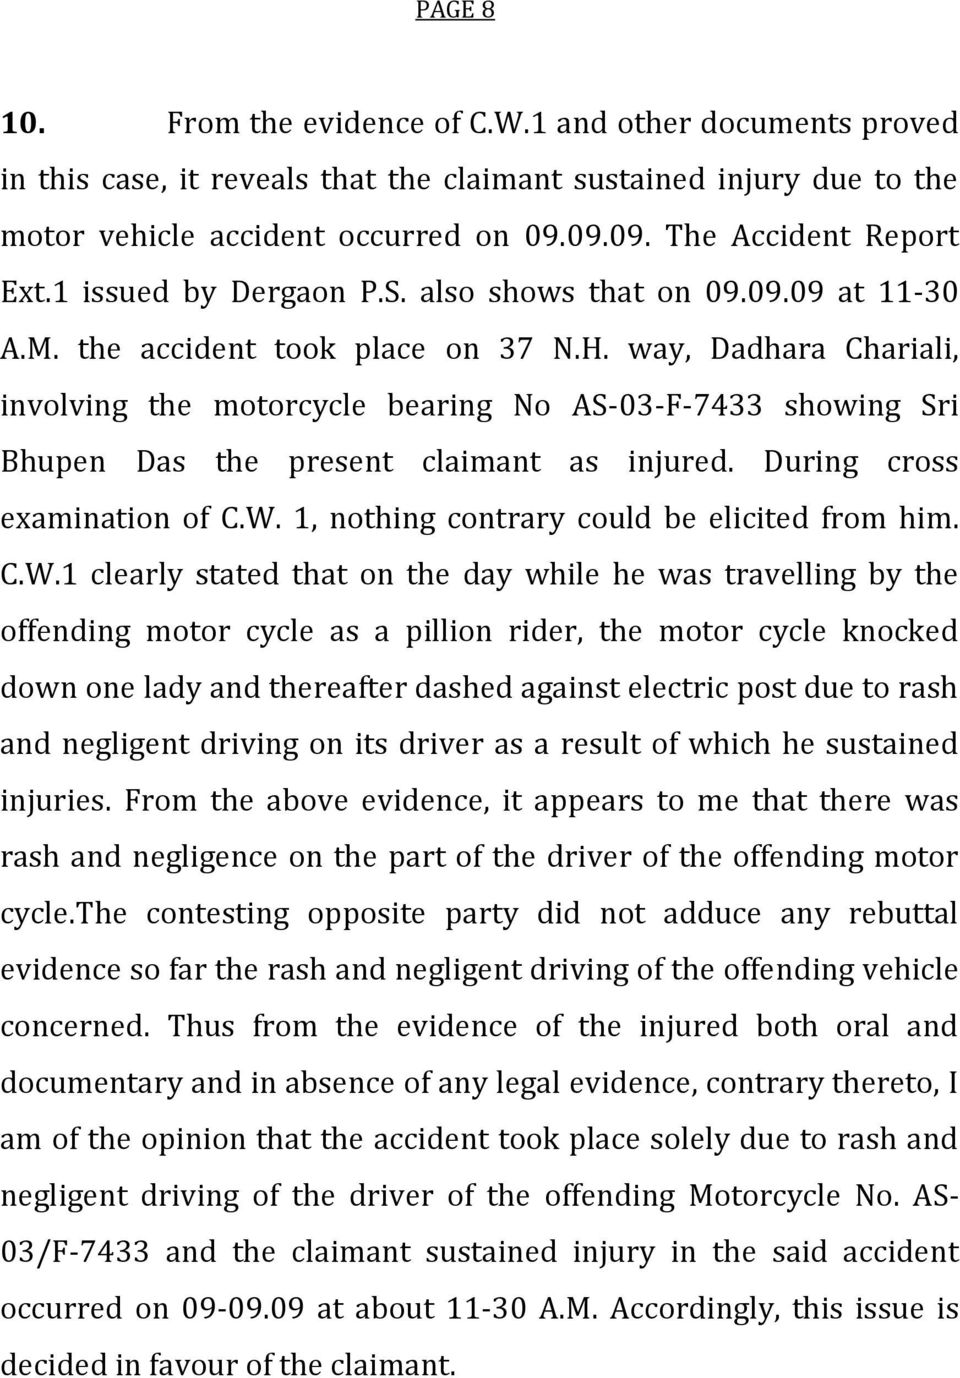 way, Dadhara Chariali, involving the motorcycle bearing No AS-03-F-7433 showing Sri Bhupen Das the present claimant as injured. During cross examination of C.W.